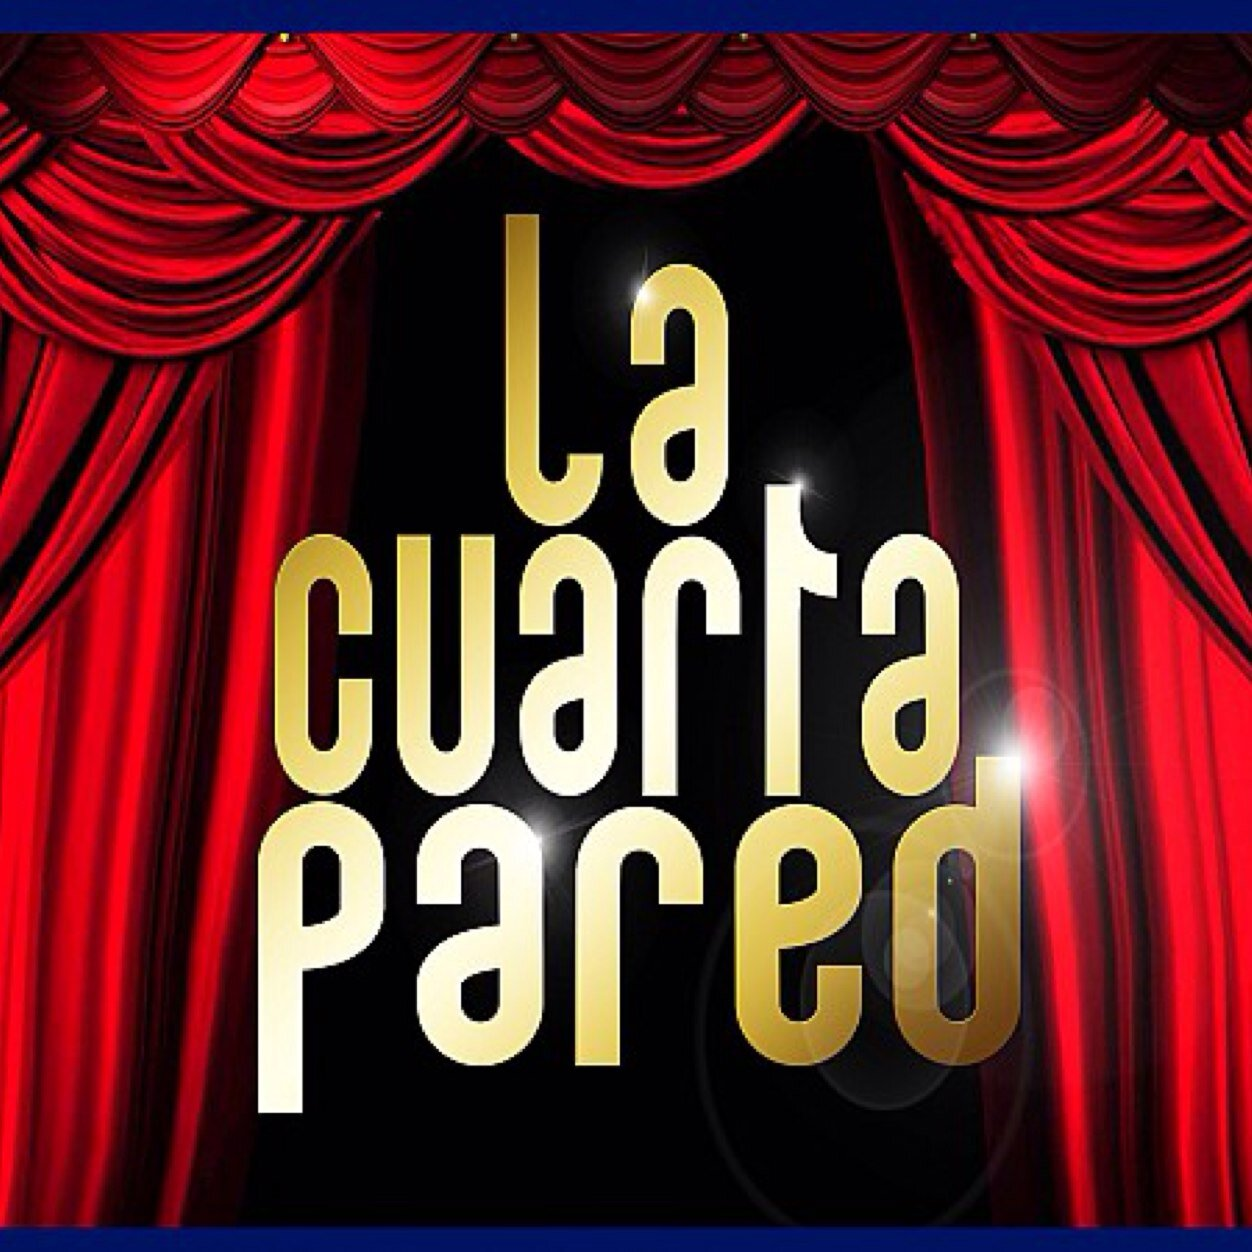 La cuarta pared (@_lacuartapared) | Twitter